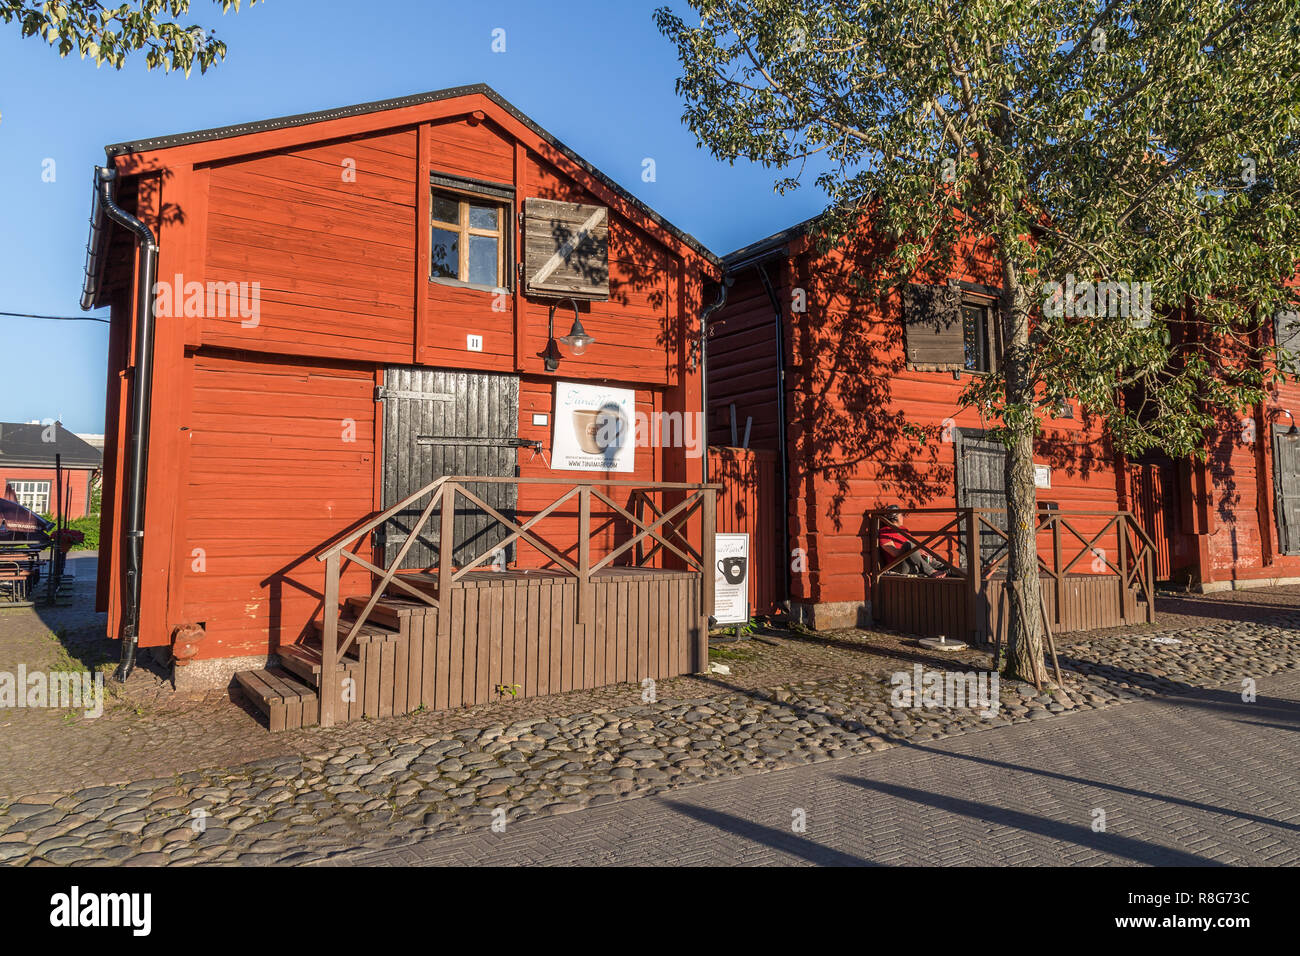 OULU, FINLAND - JULY 21, 2016:  Old wooden warehouses  in the old center around the harbor of Oulu Finland - Stock Image